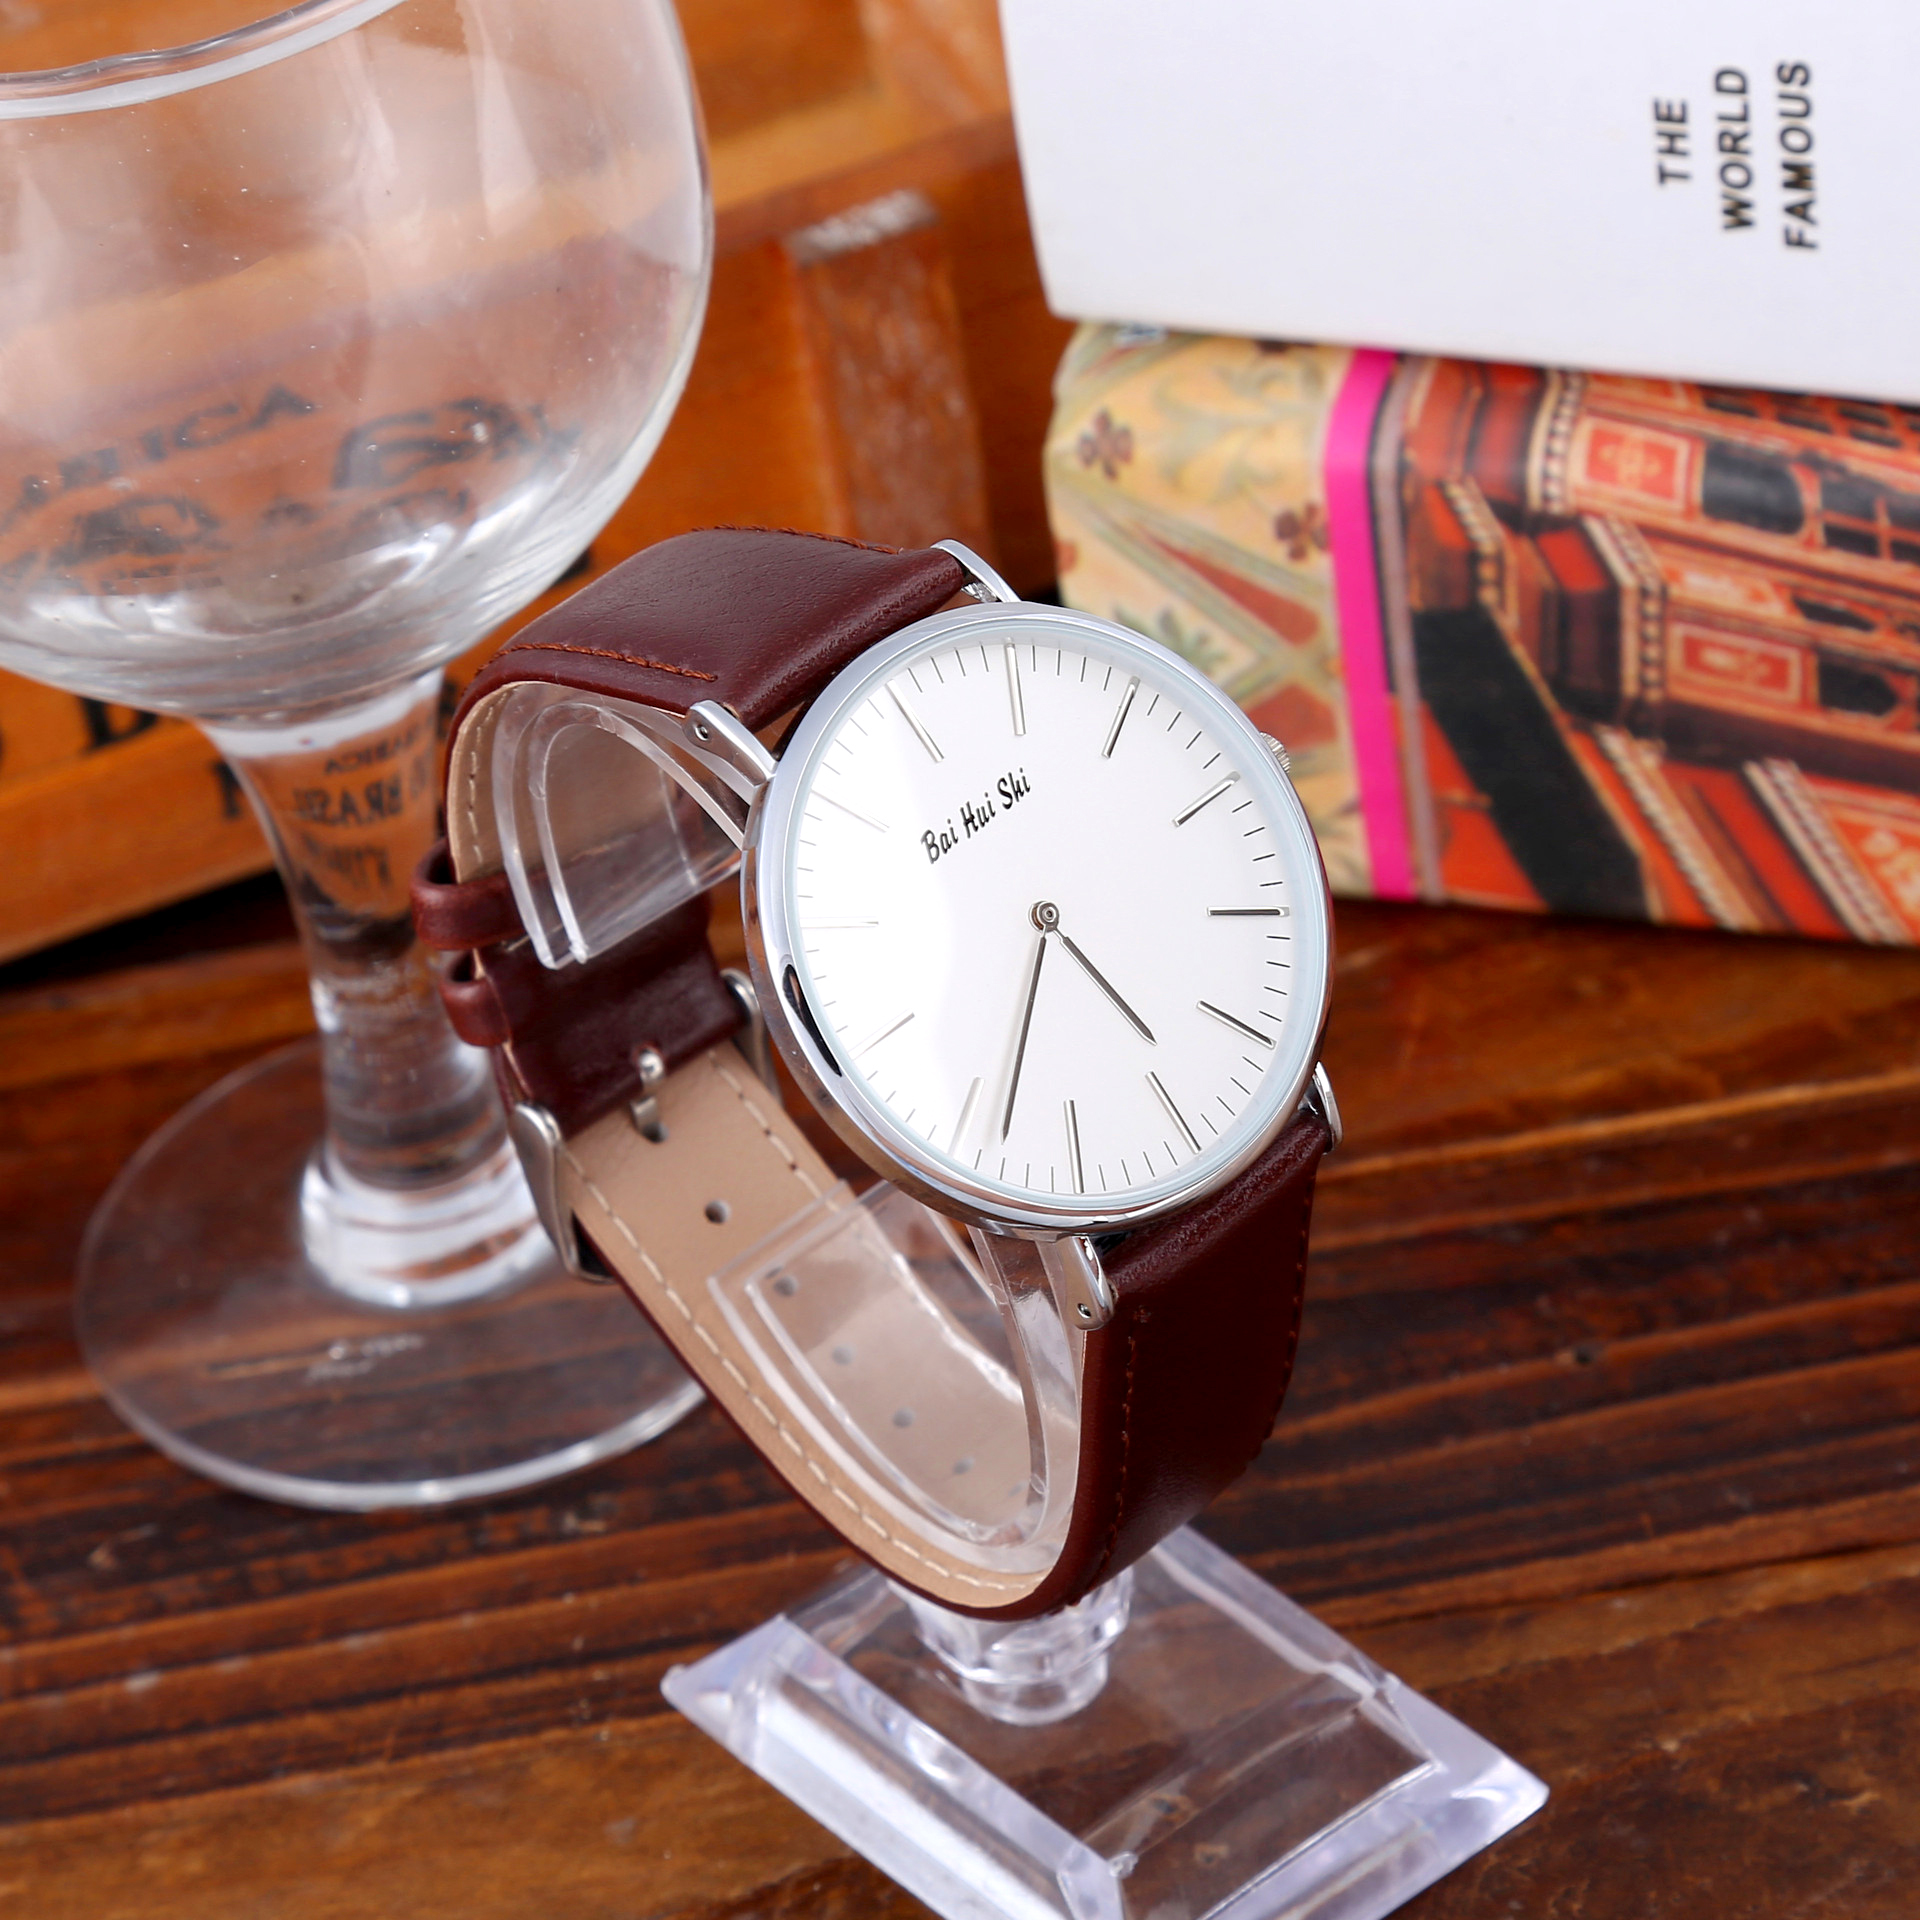 2019 New Hot Selling Couple Watch Simple Black Waterproof Quartz Watch For Lover